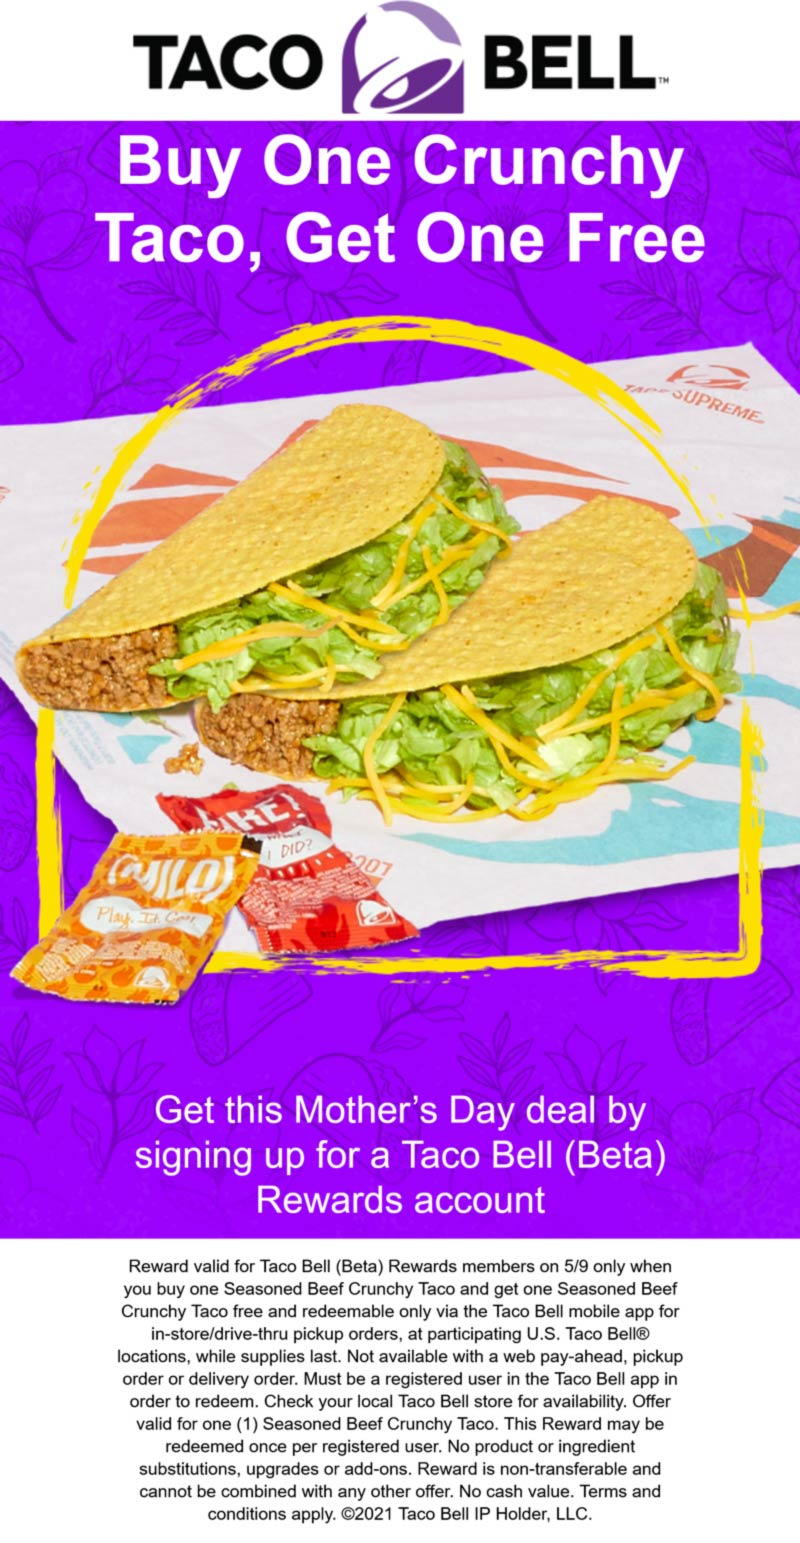 Taco Bell restaurants Coupon  Second taco free for rewards members today at Taco Bell #tacobell